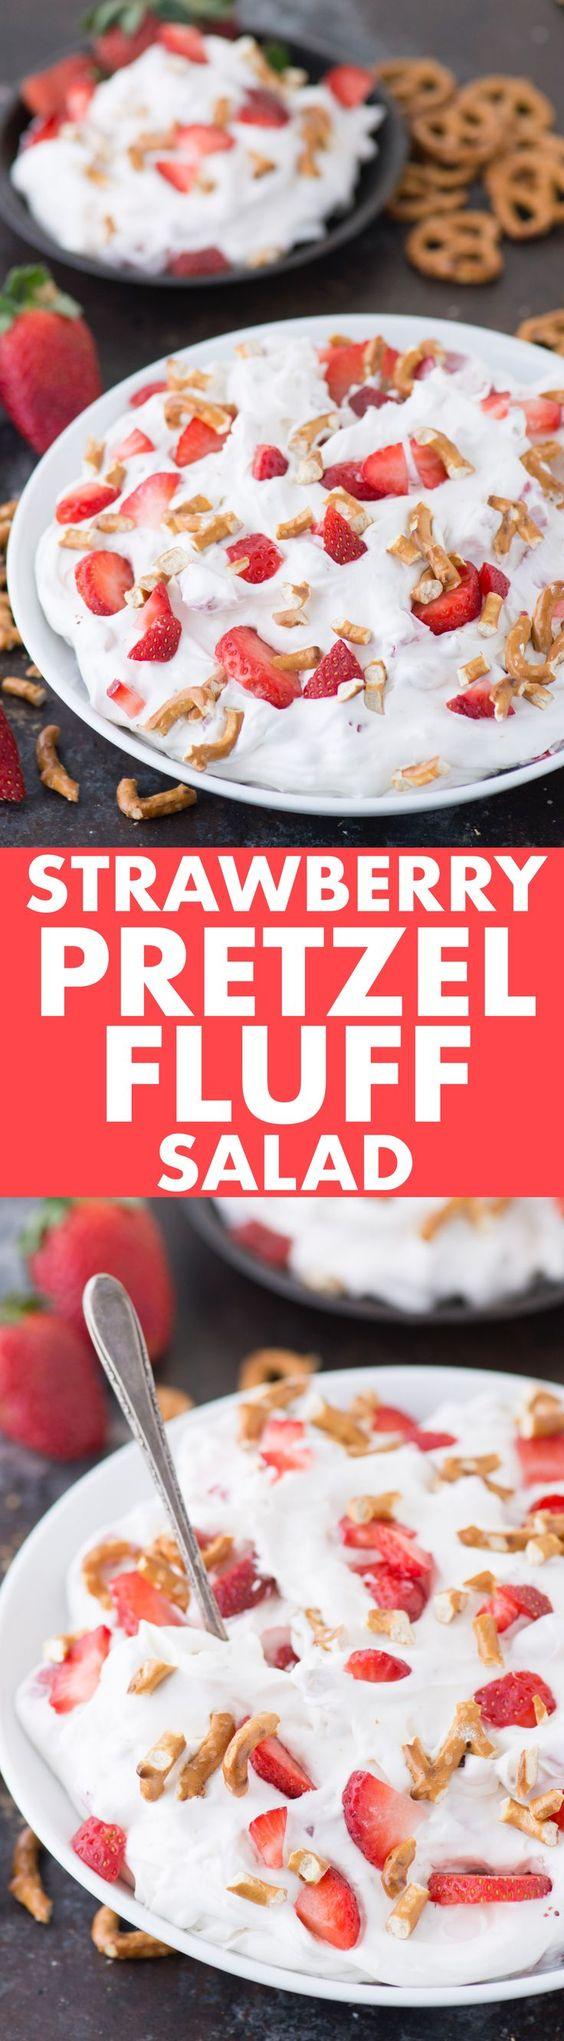 STRAWBERRY PRETZEL FLUFF SALAD! A dessert salad that reminds us of the classic strawberry pretzel bar dessert. A picnic recipe you can make in 10 minutes!: